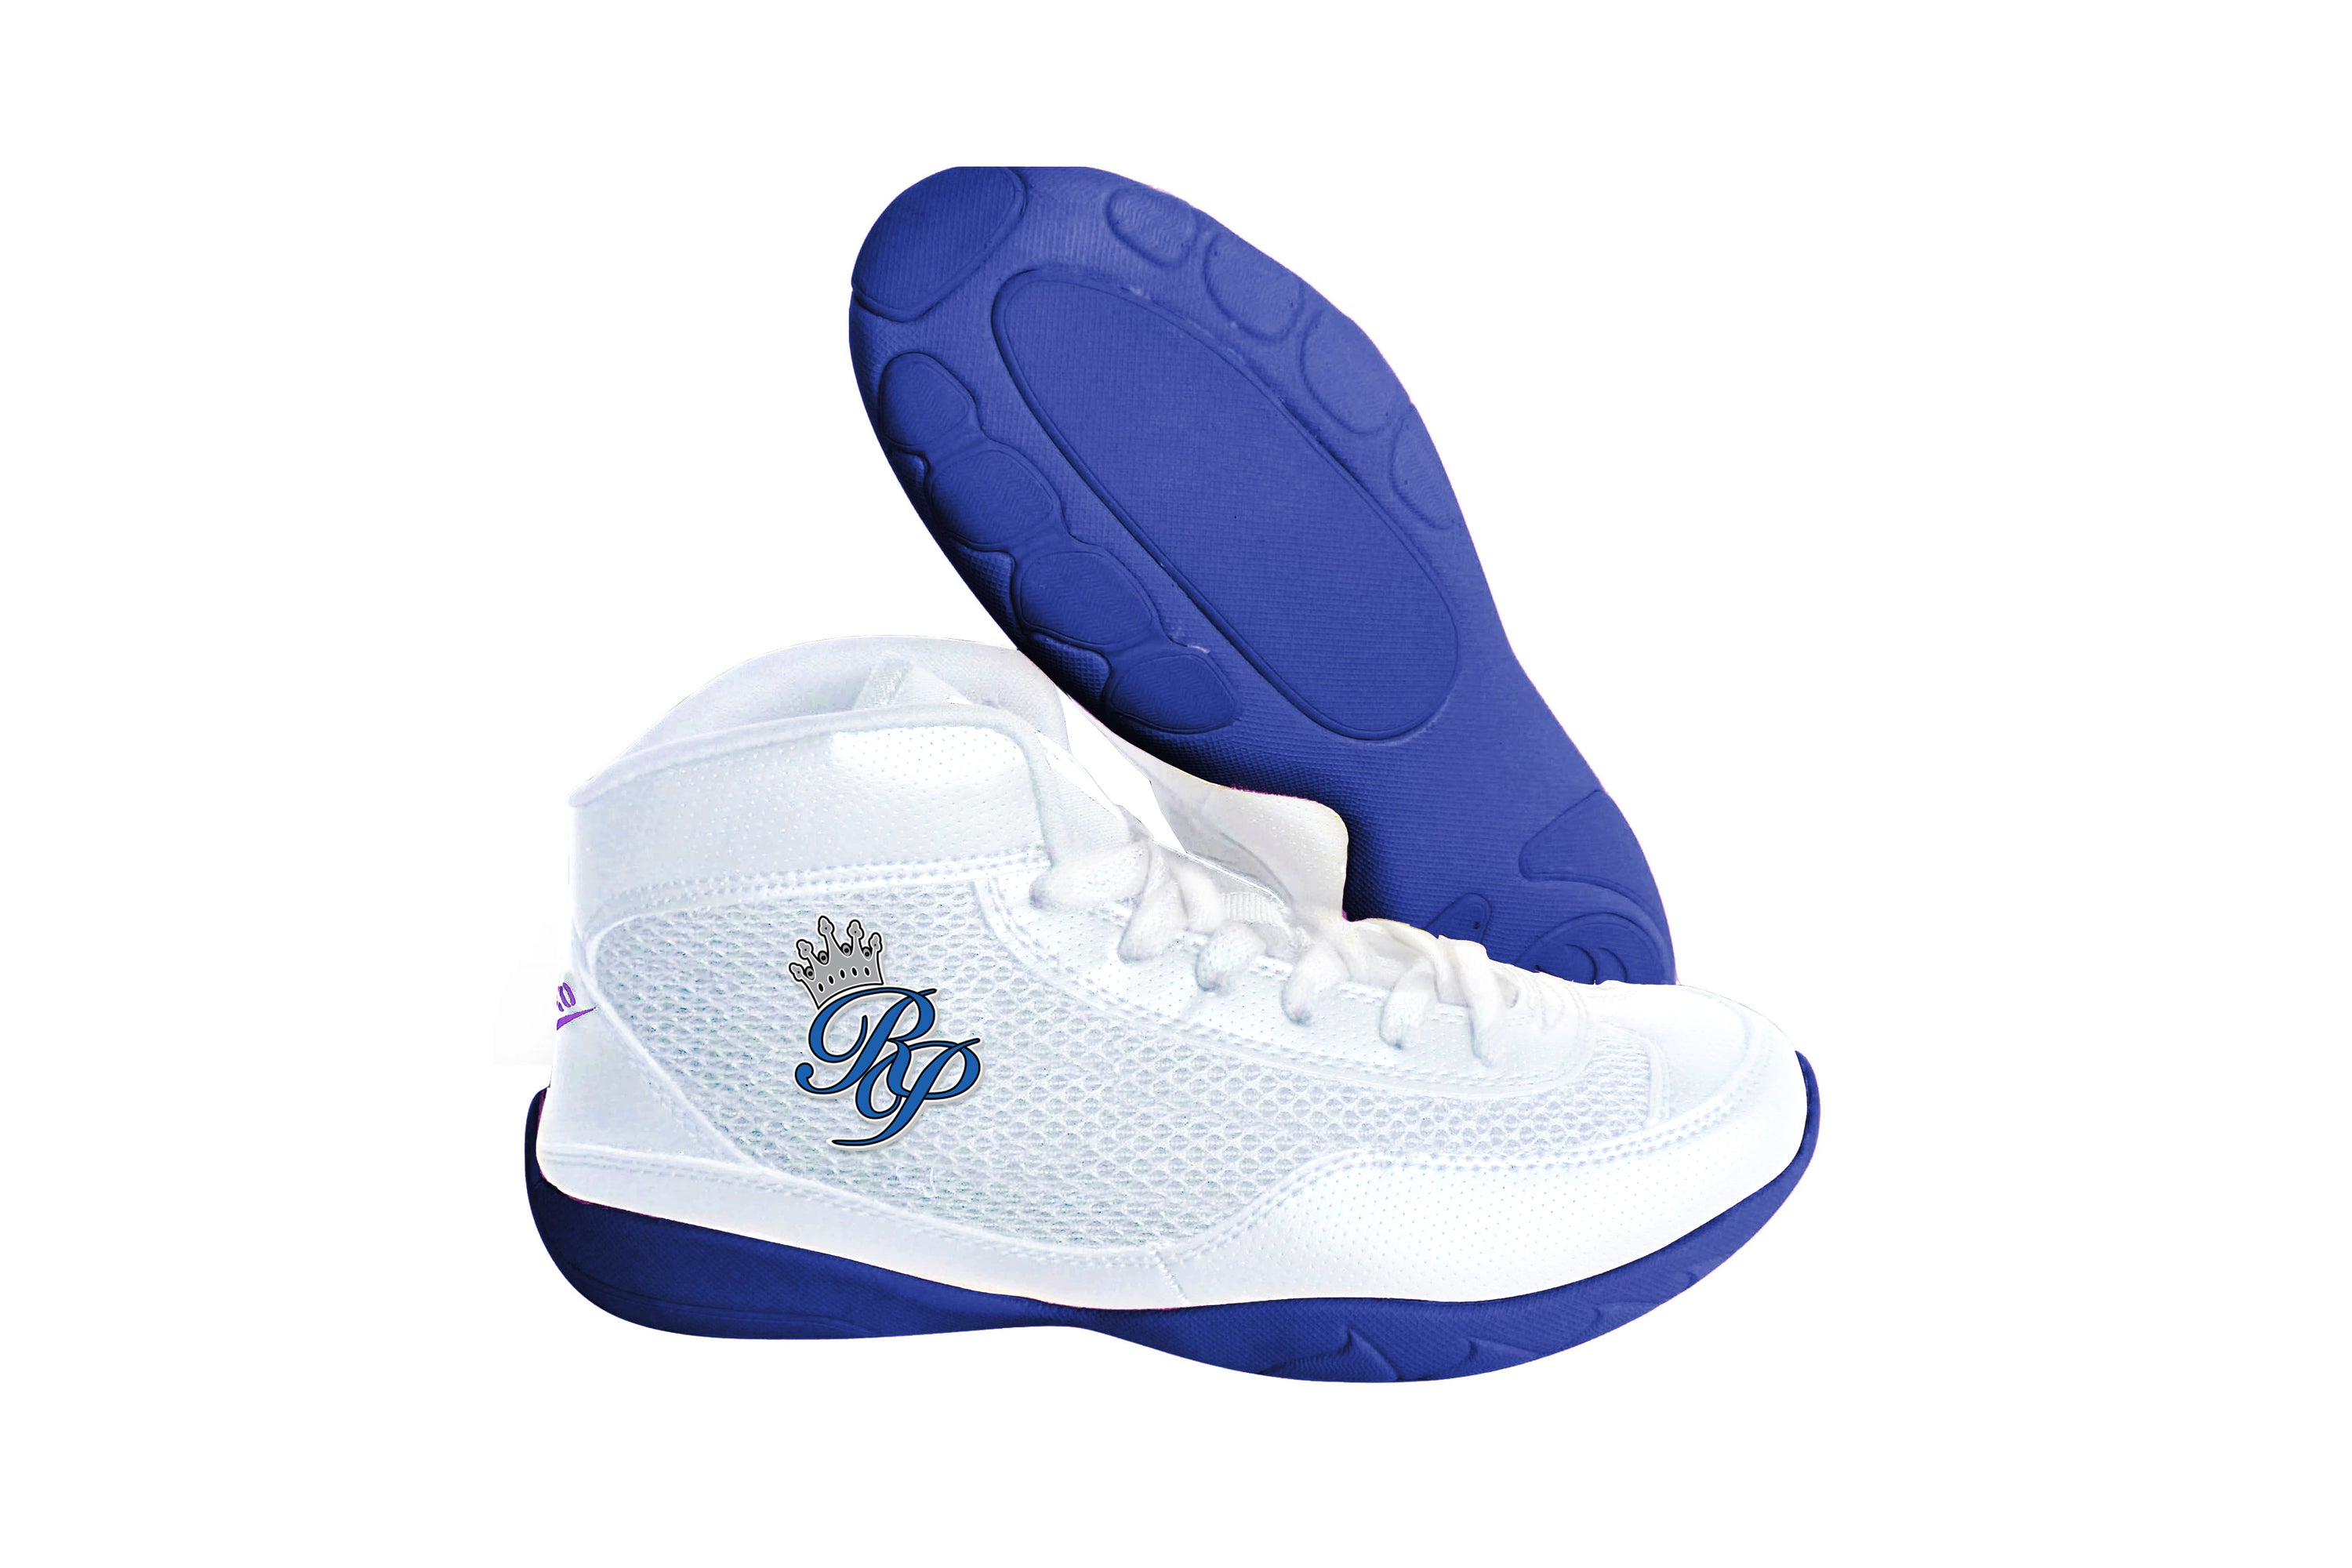 High Top V-Ro Blue Shoes